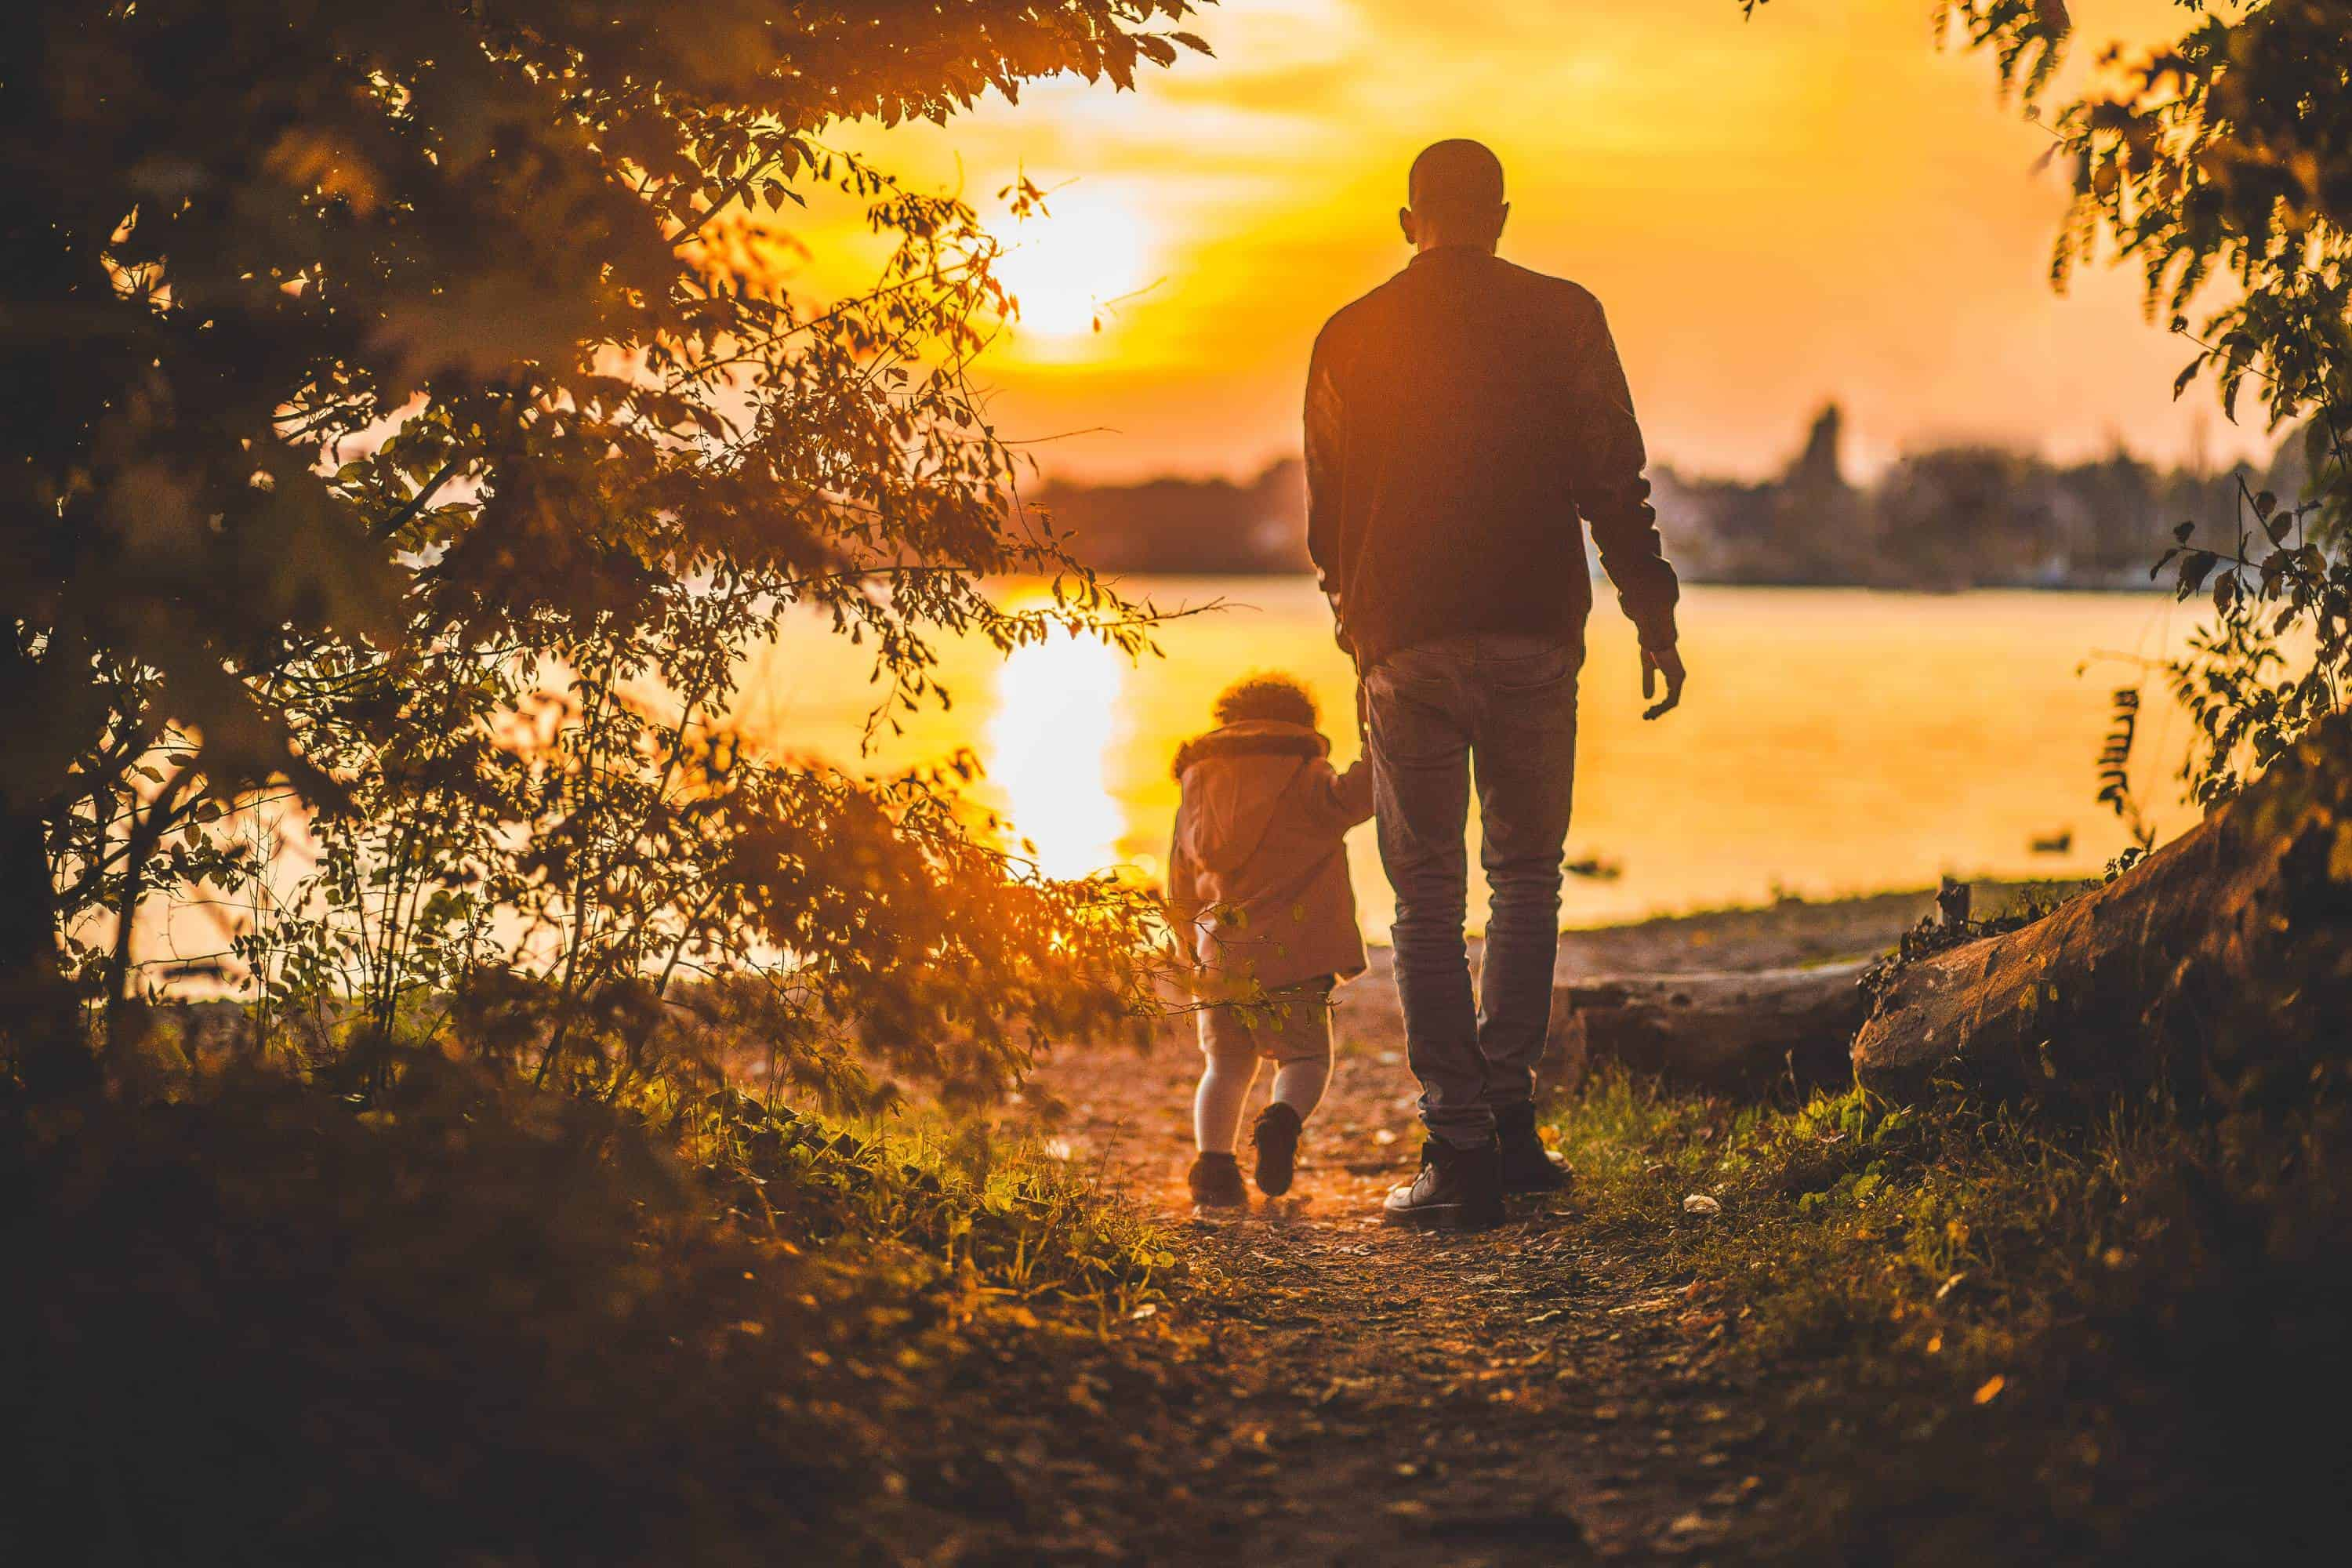 Father's Day Image - man with child at sunset